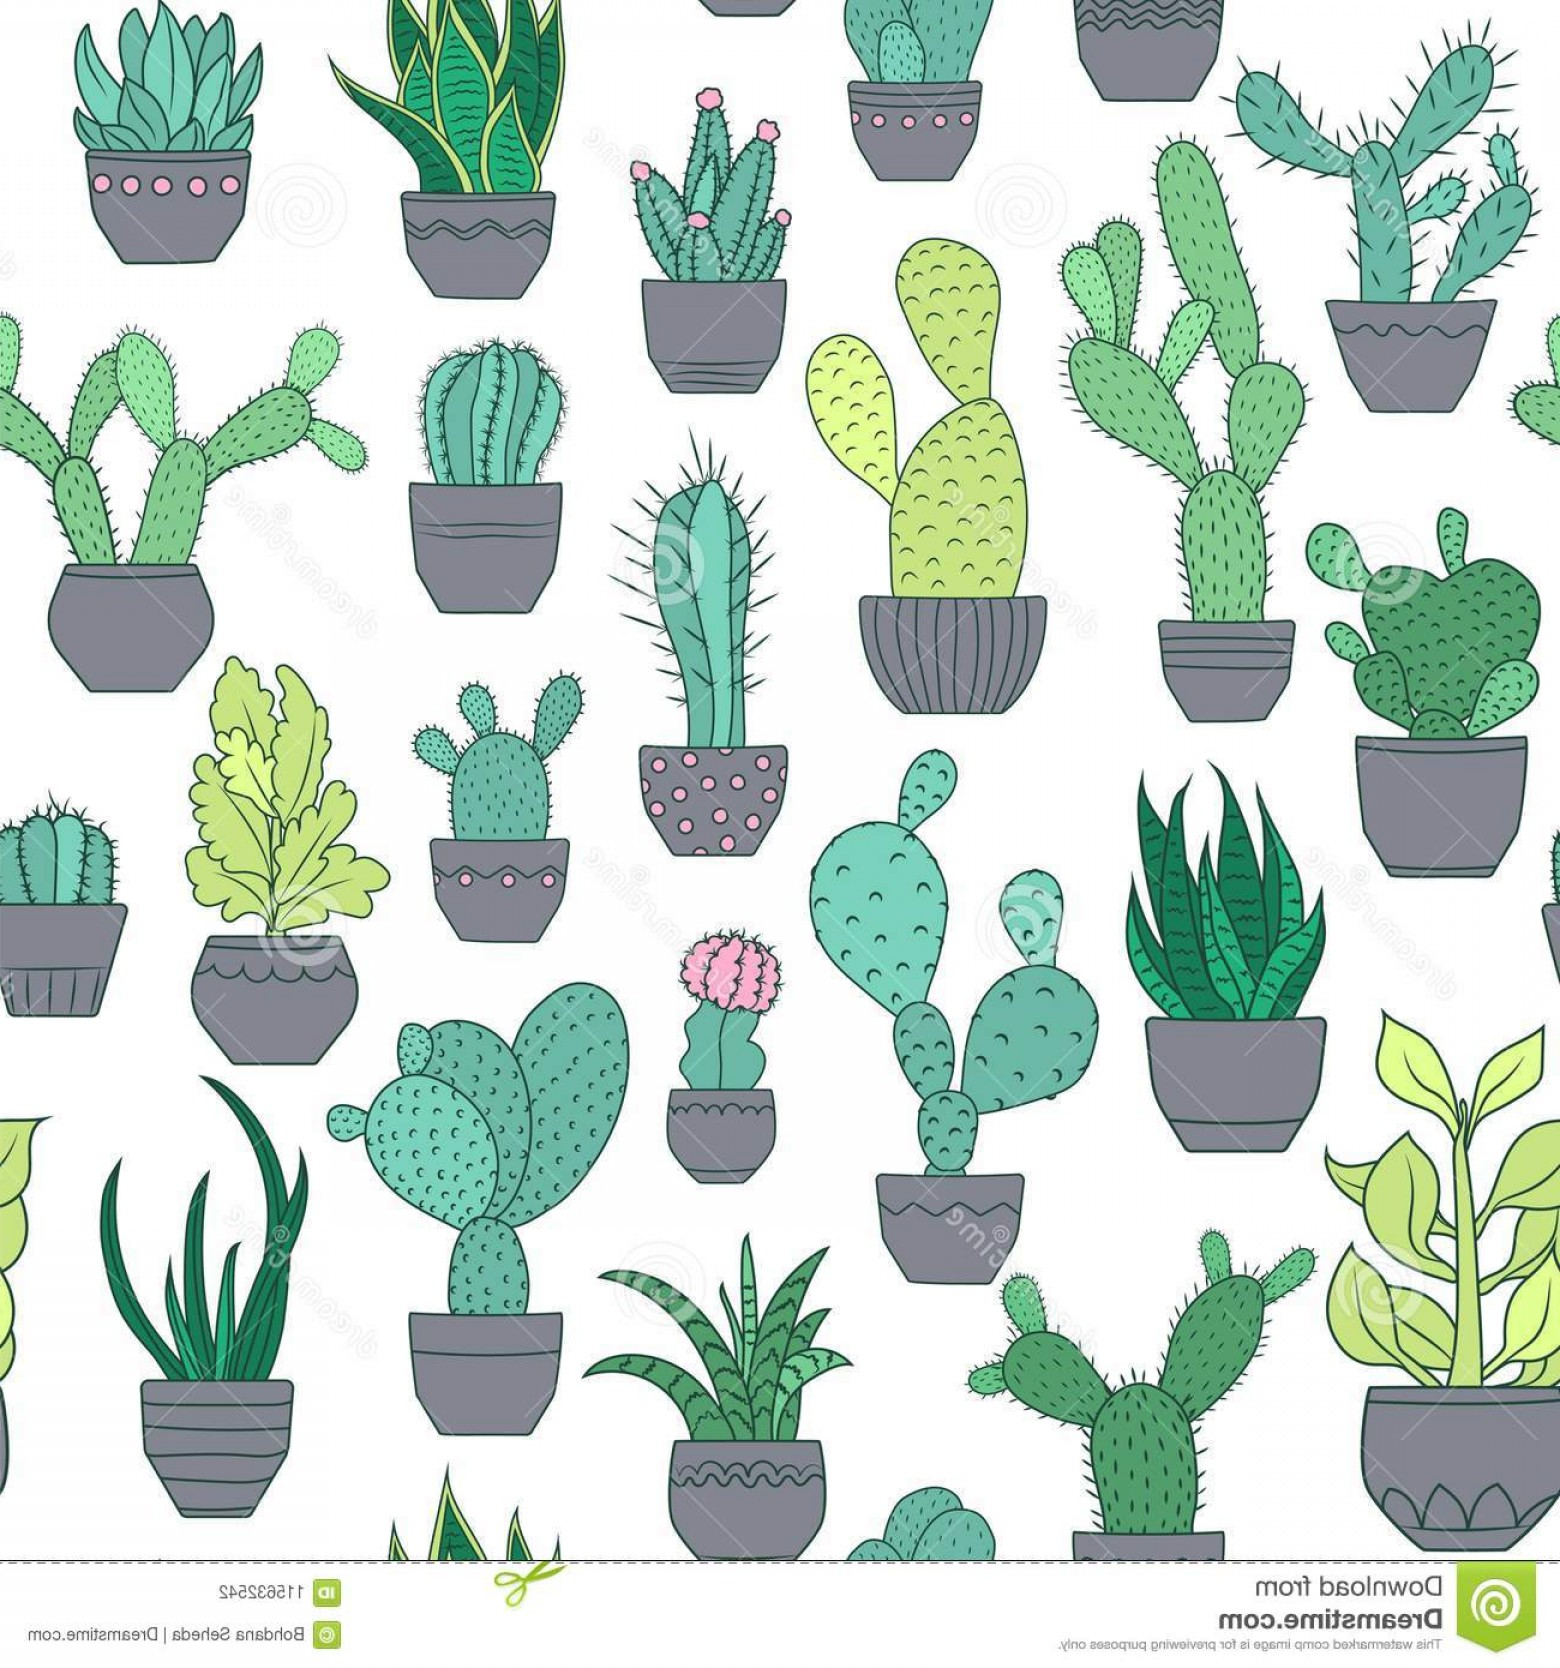 Potted Cactus Plant Vector: Potted Cactus Succulent Plants Seamless Pattern Exotic Flowers Species Houseplants Texture Colorful Drawing White Background Image